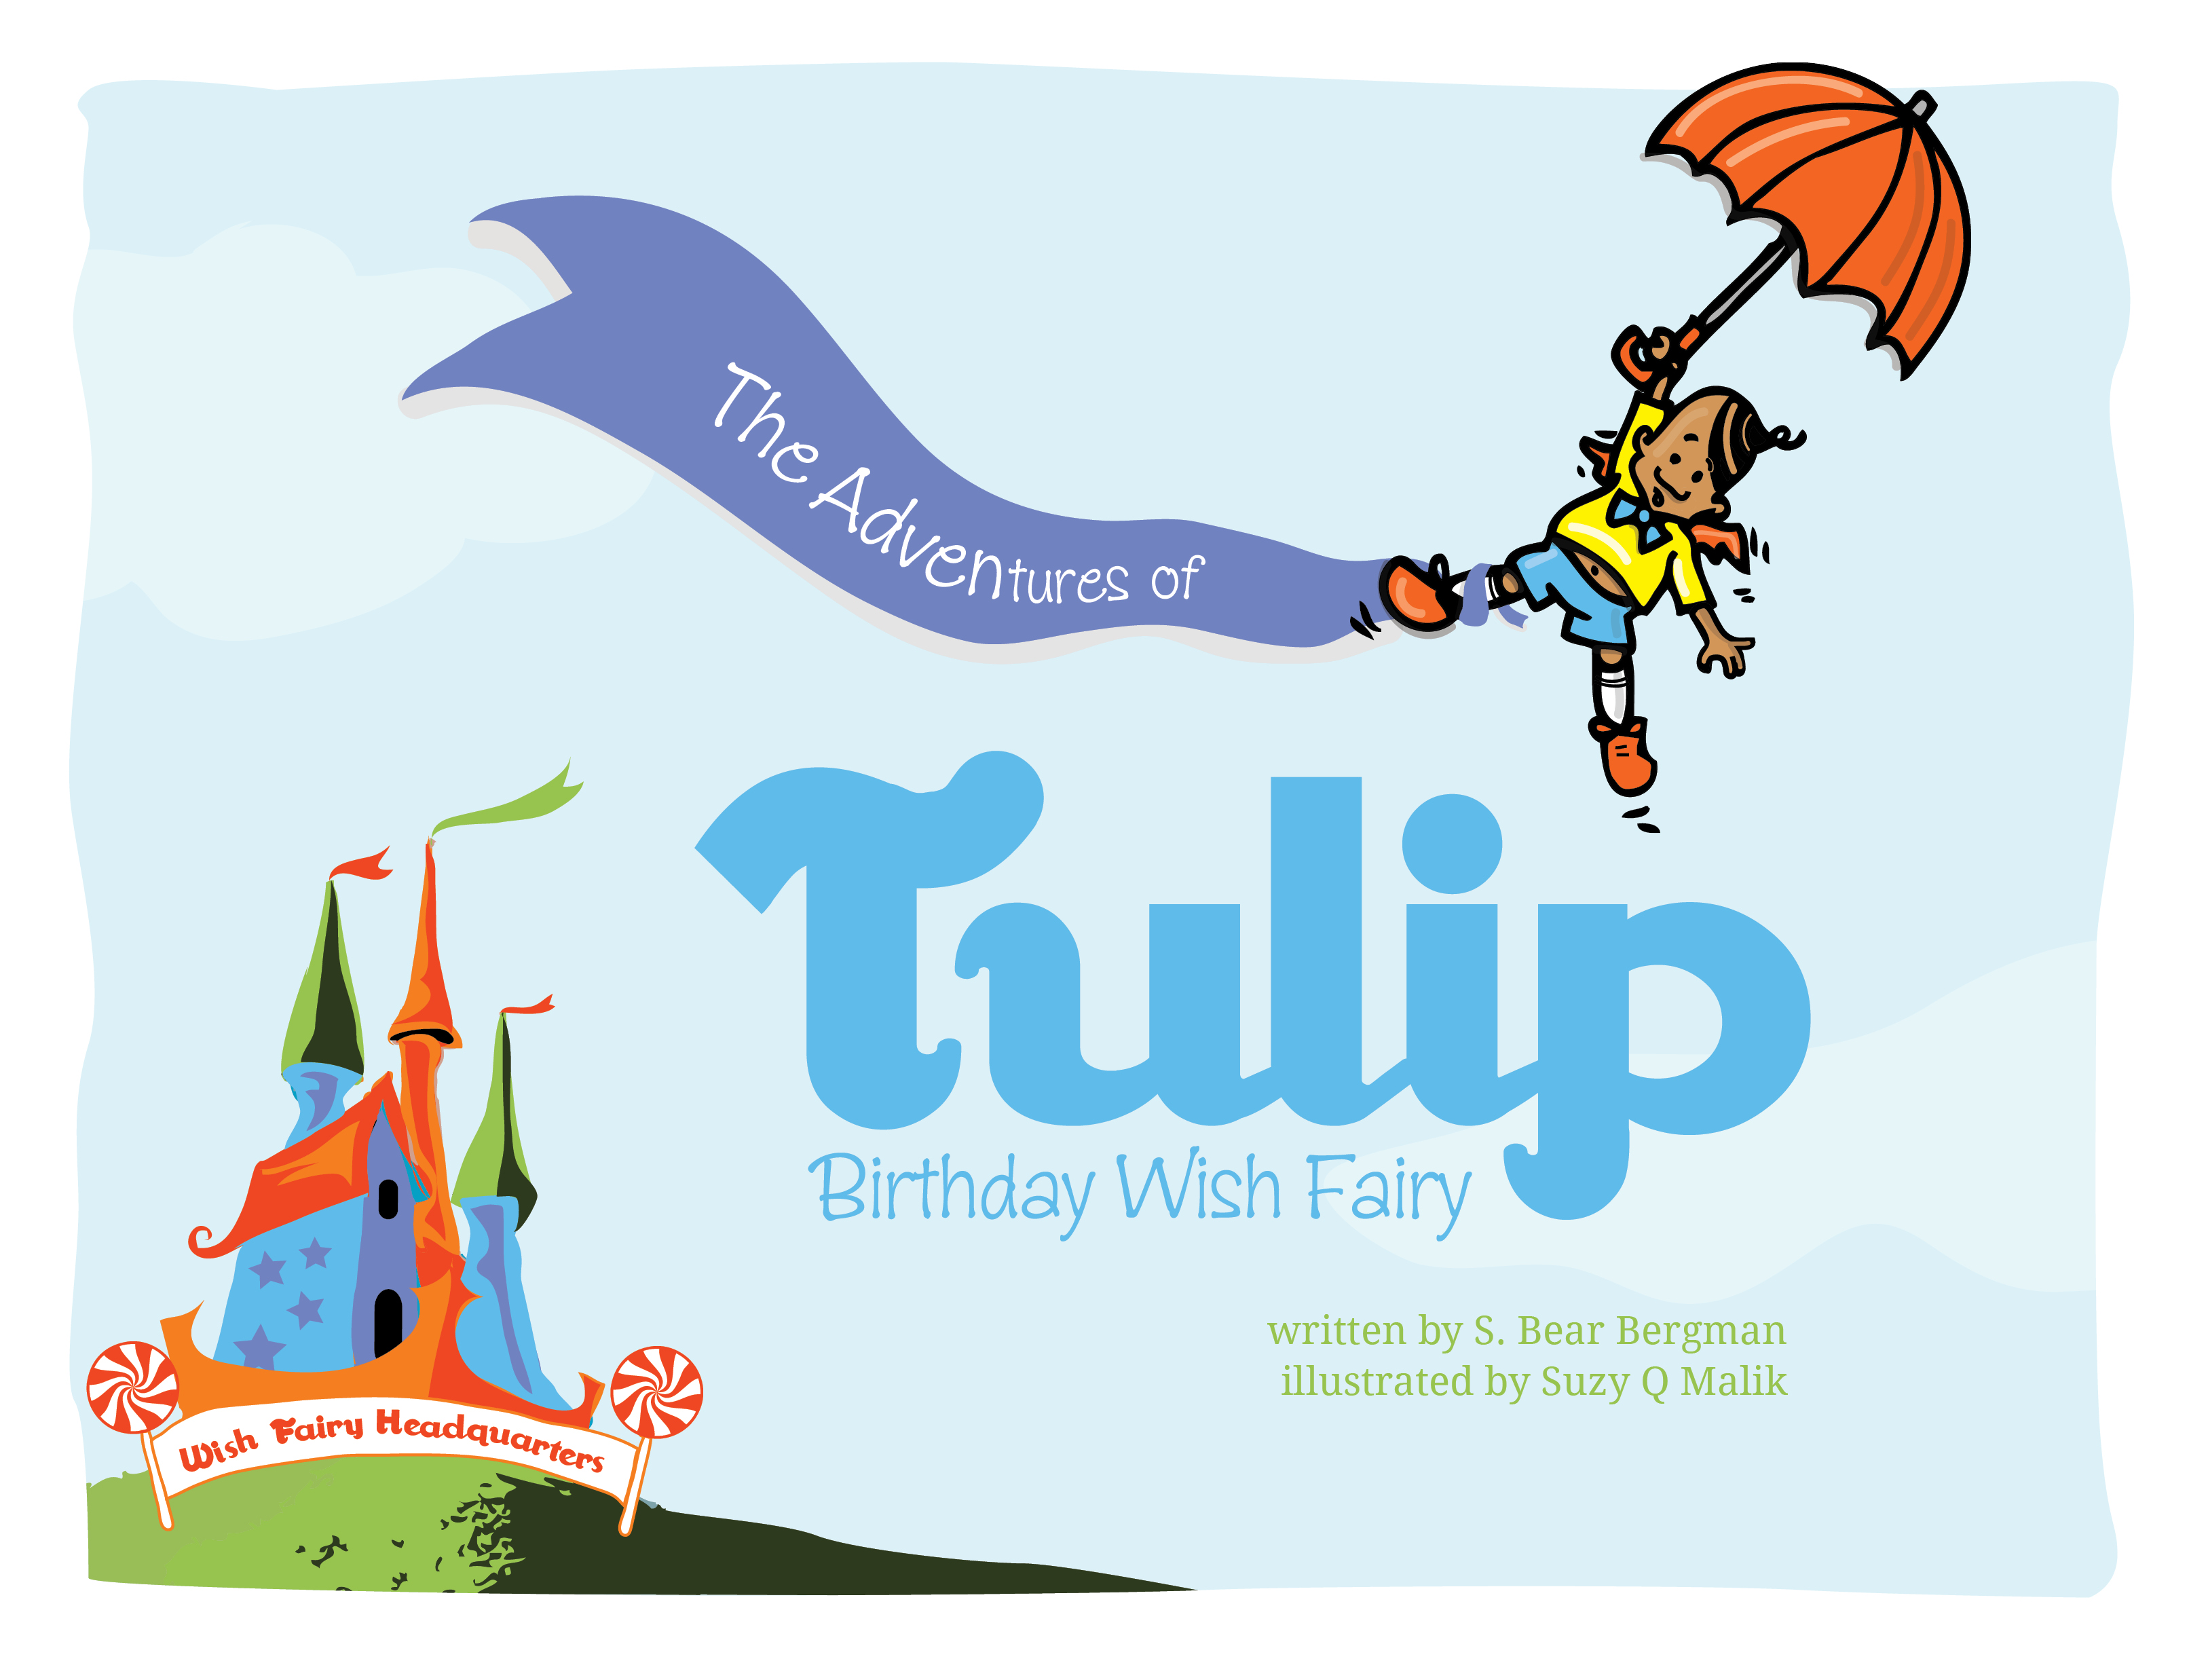 THE ADVENTURES OF TULIP. BIRTHDAY WISH FAIRY BY S. BEAR BERGMAN, ILLUSTRATED BY SUZY Q MALIK